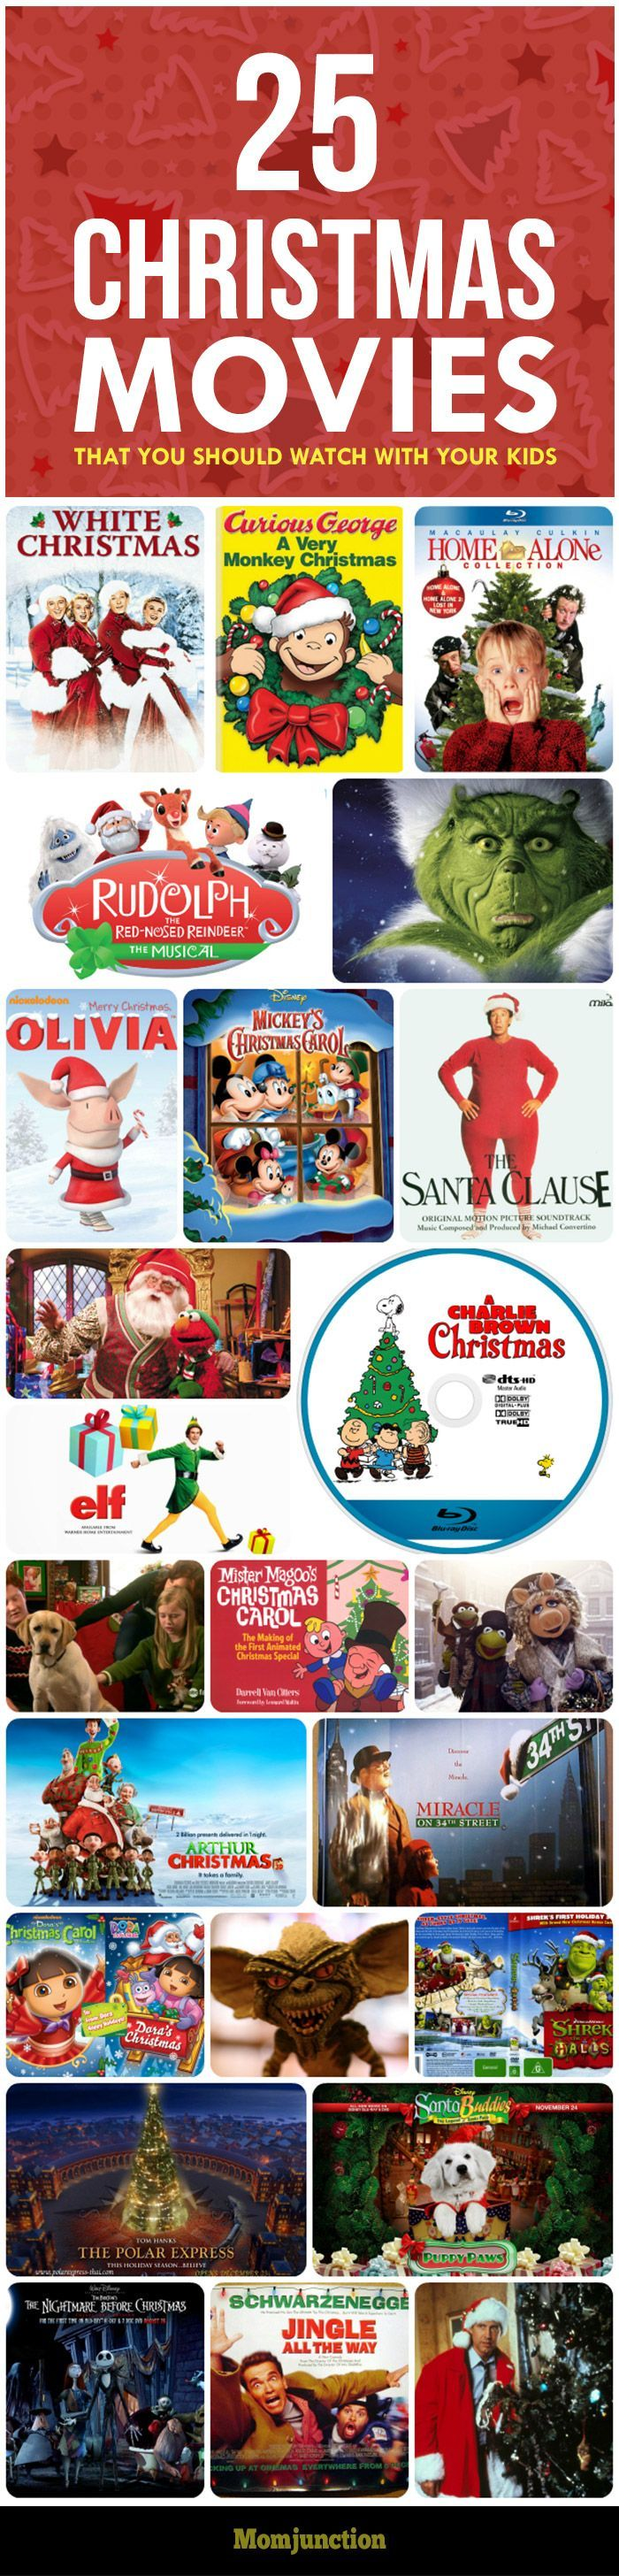 Top 25 #Christmas Themed Movies That You Should Watch With Your Kids: If you are on the lookout for some good recommendations about best Christmas movies for kids, keep reading.